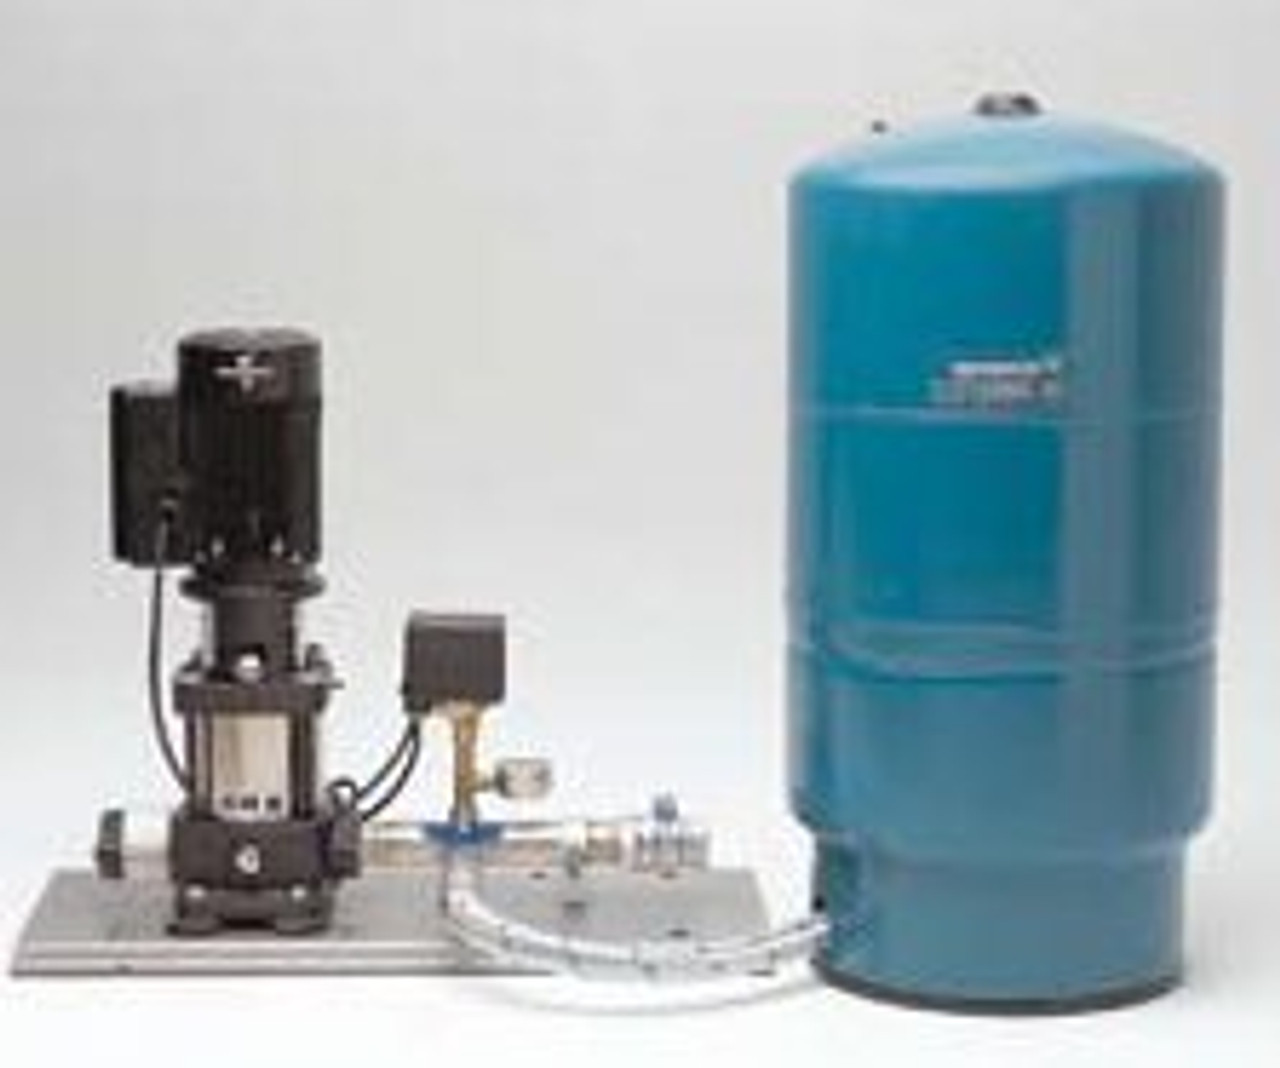 Grundfos CR3-13 Vertical Multistage Pump with Pressure Tank and Pressure Switch on a stainless steel base